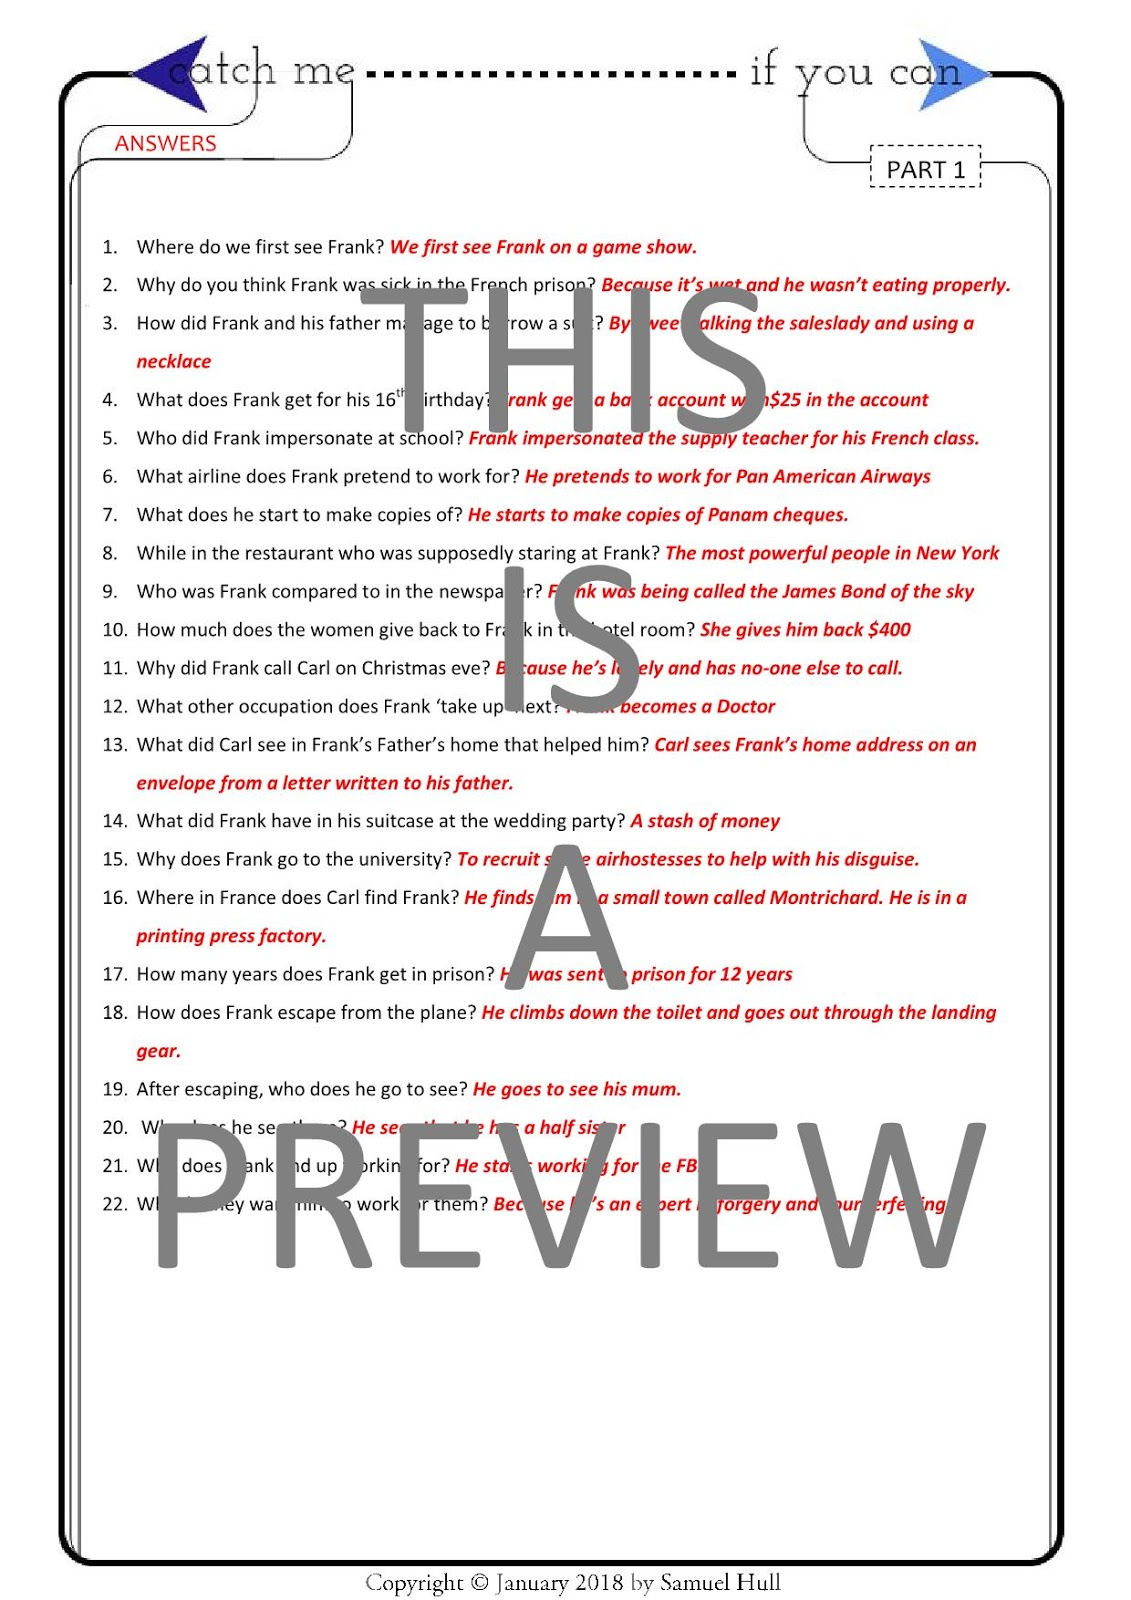 Catch Me If You Can 2002 Movie Comprehension Questions Answer